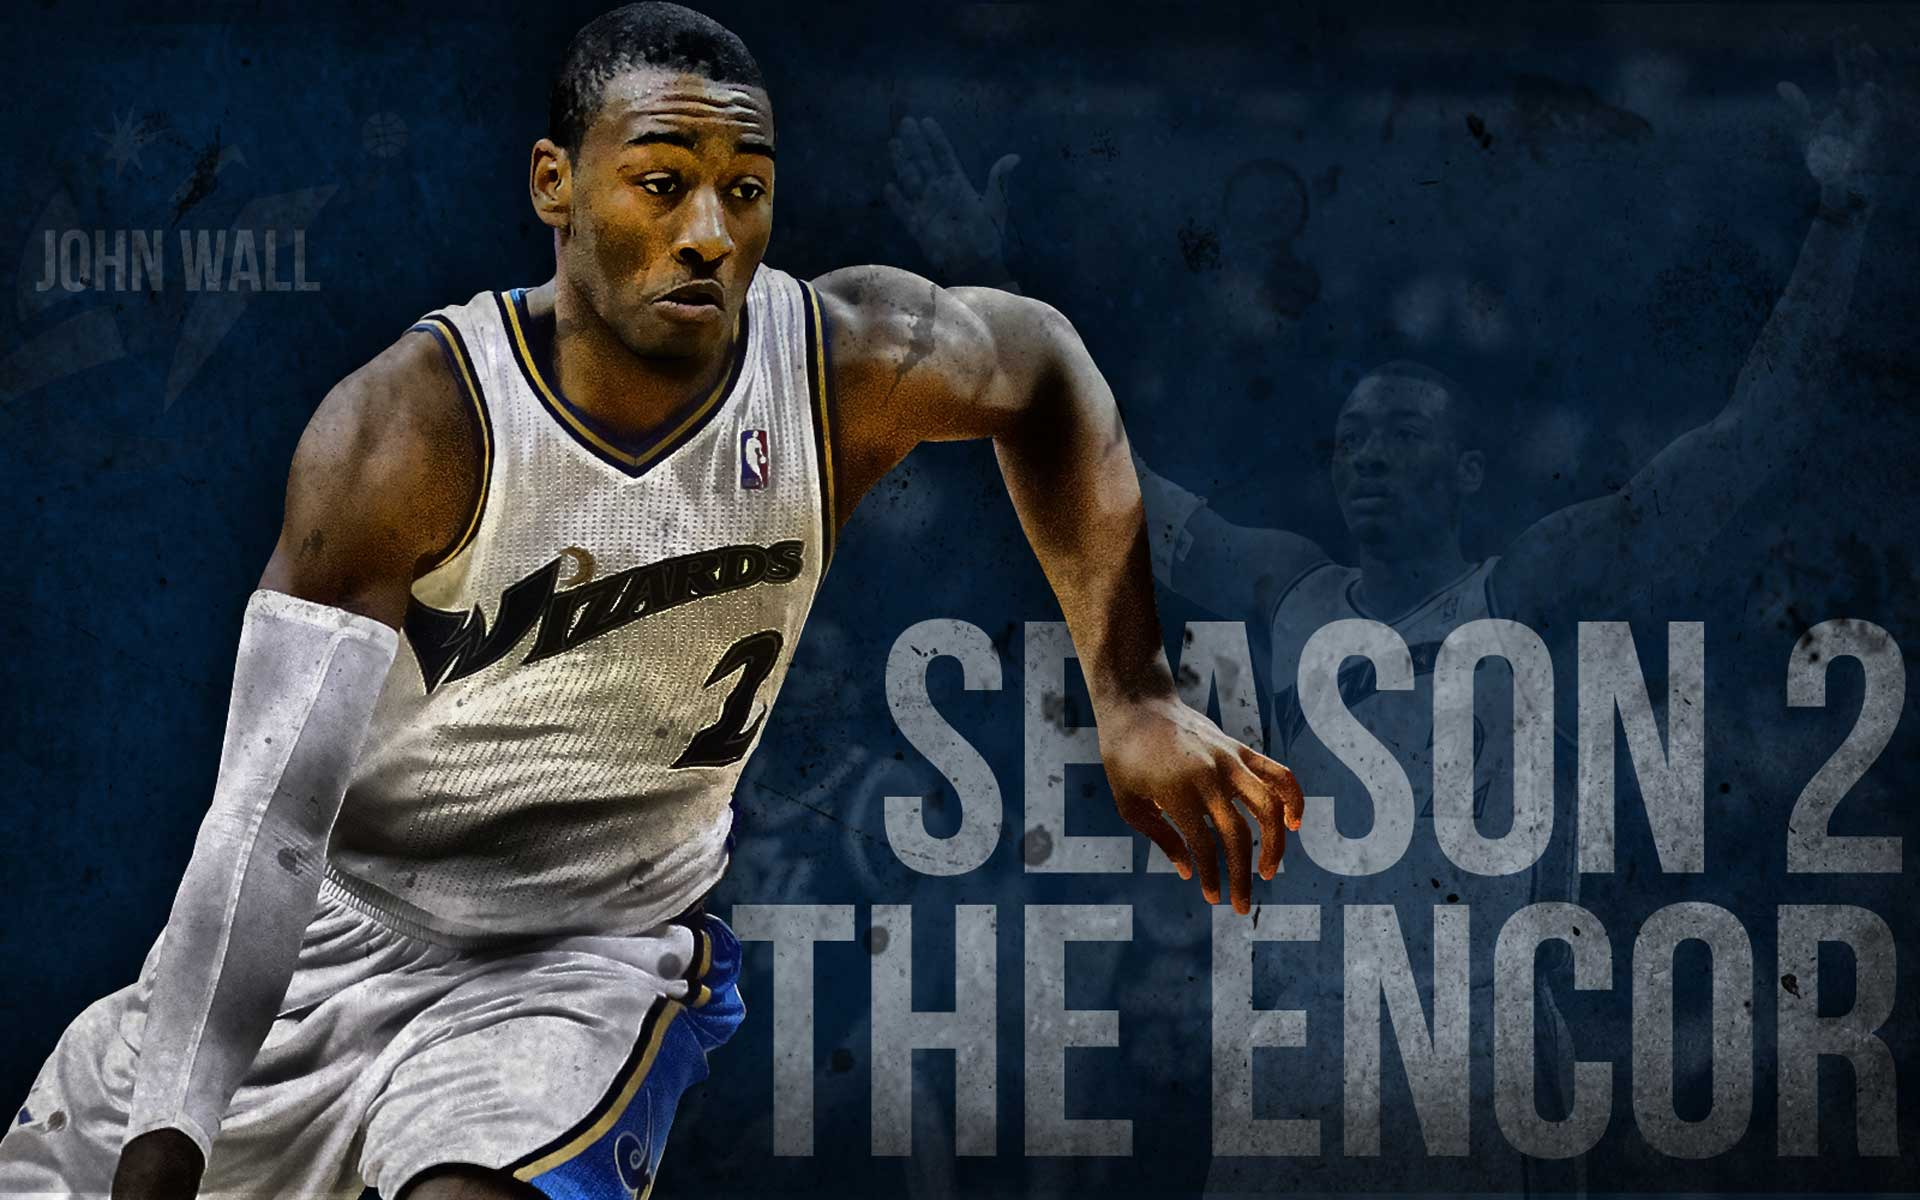 Free Wallpapers - John Wall wallpaper